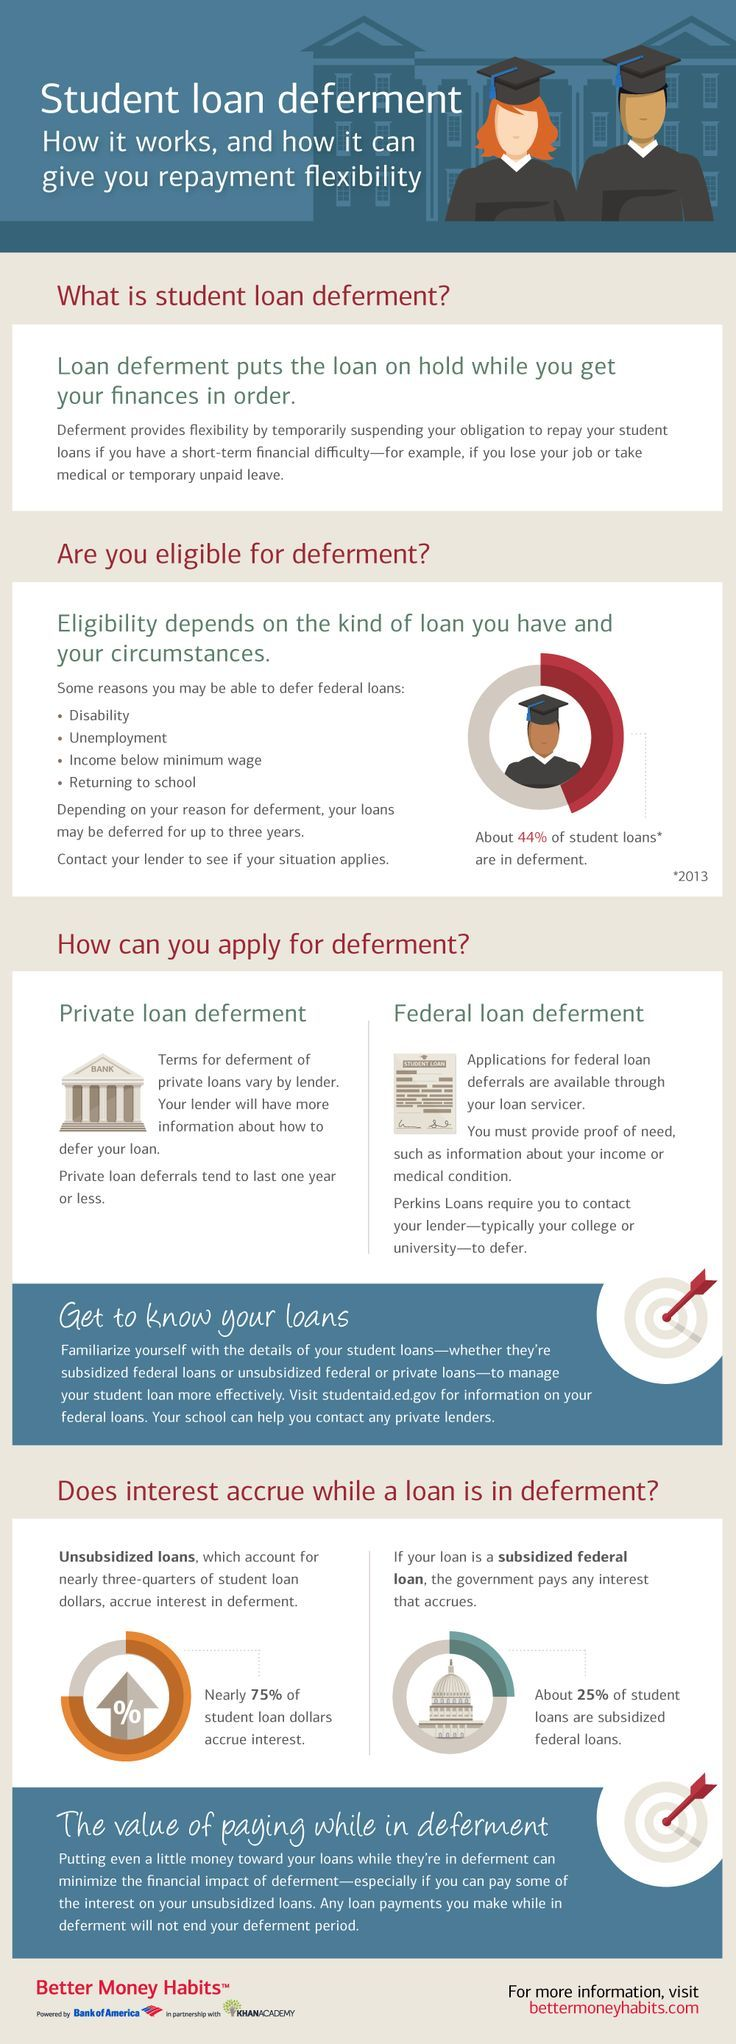 Student Loan Deferment - how it works, and how it can offer you repayment flexibility. (Infographic) Credit, Credit Scores, Credit Repair #credit #creditscore Credit, Credit Scores, Credit Repair #credit #creditscore